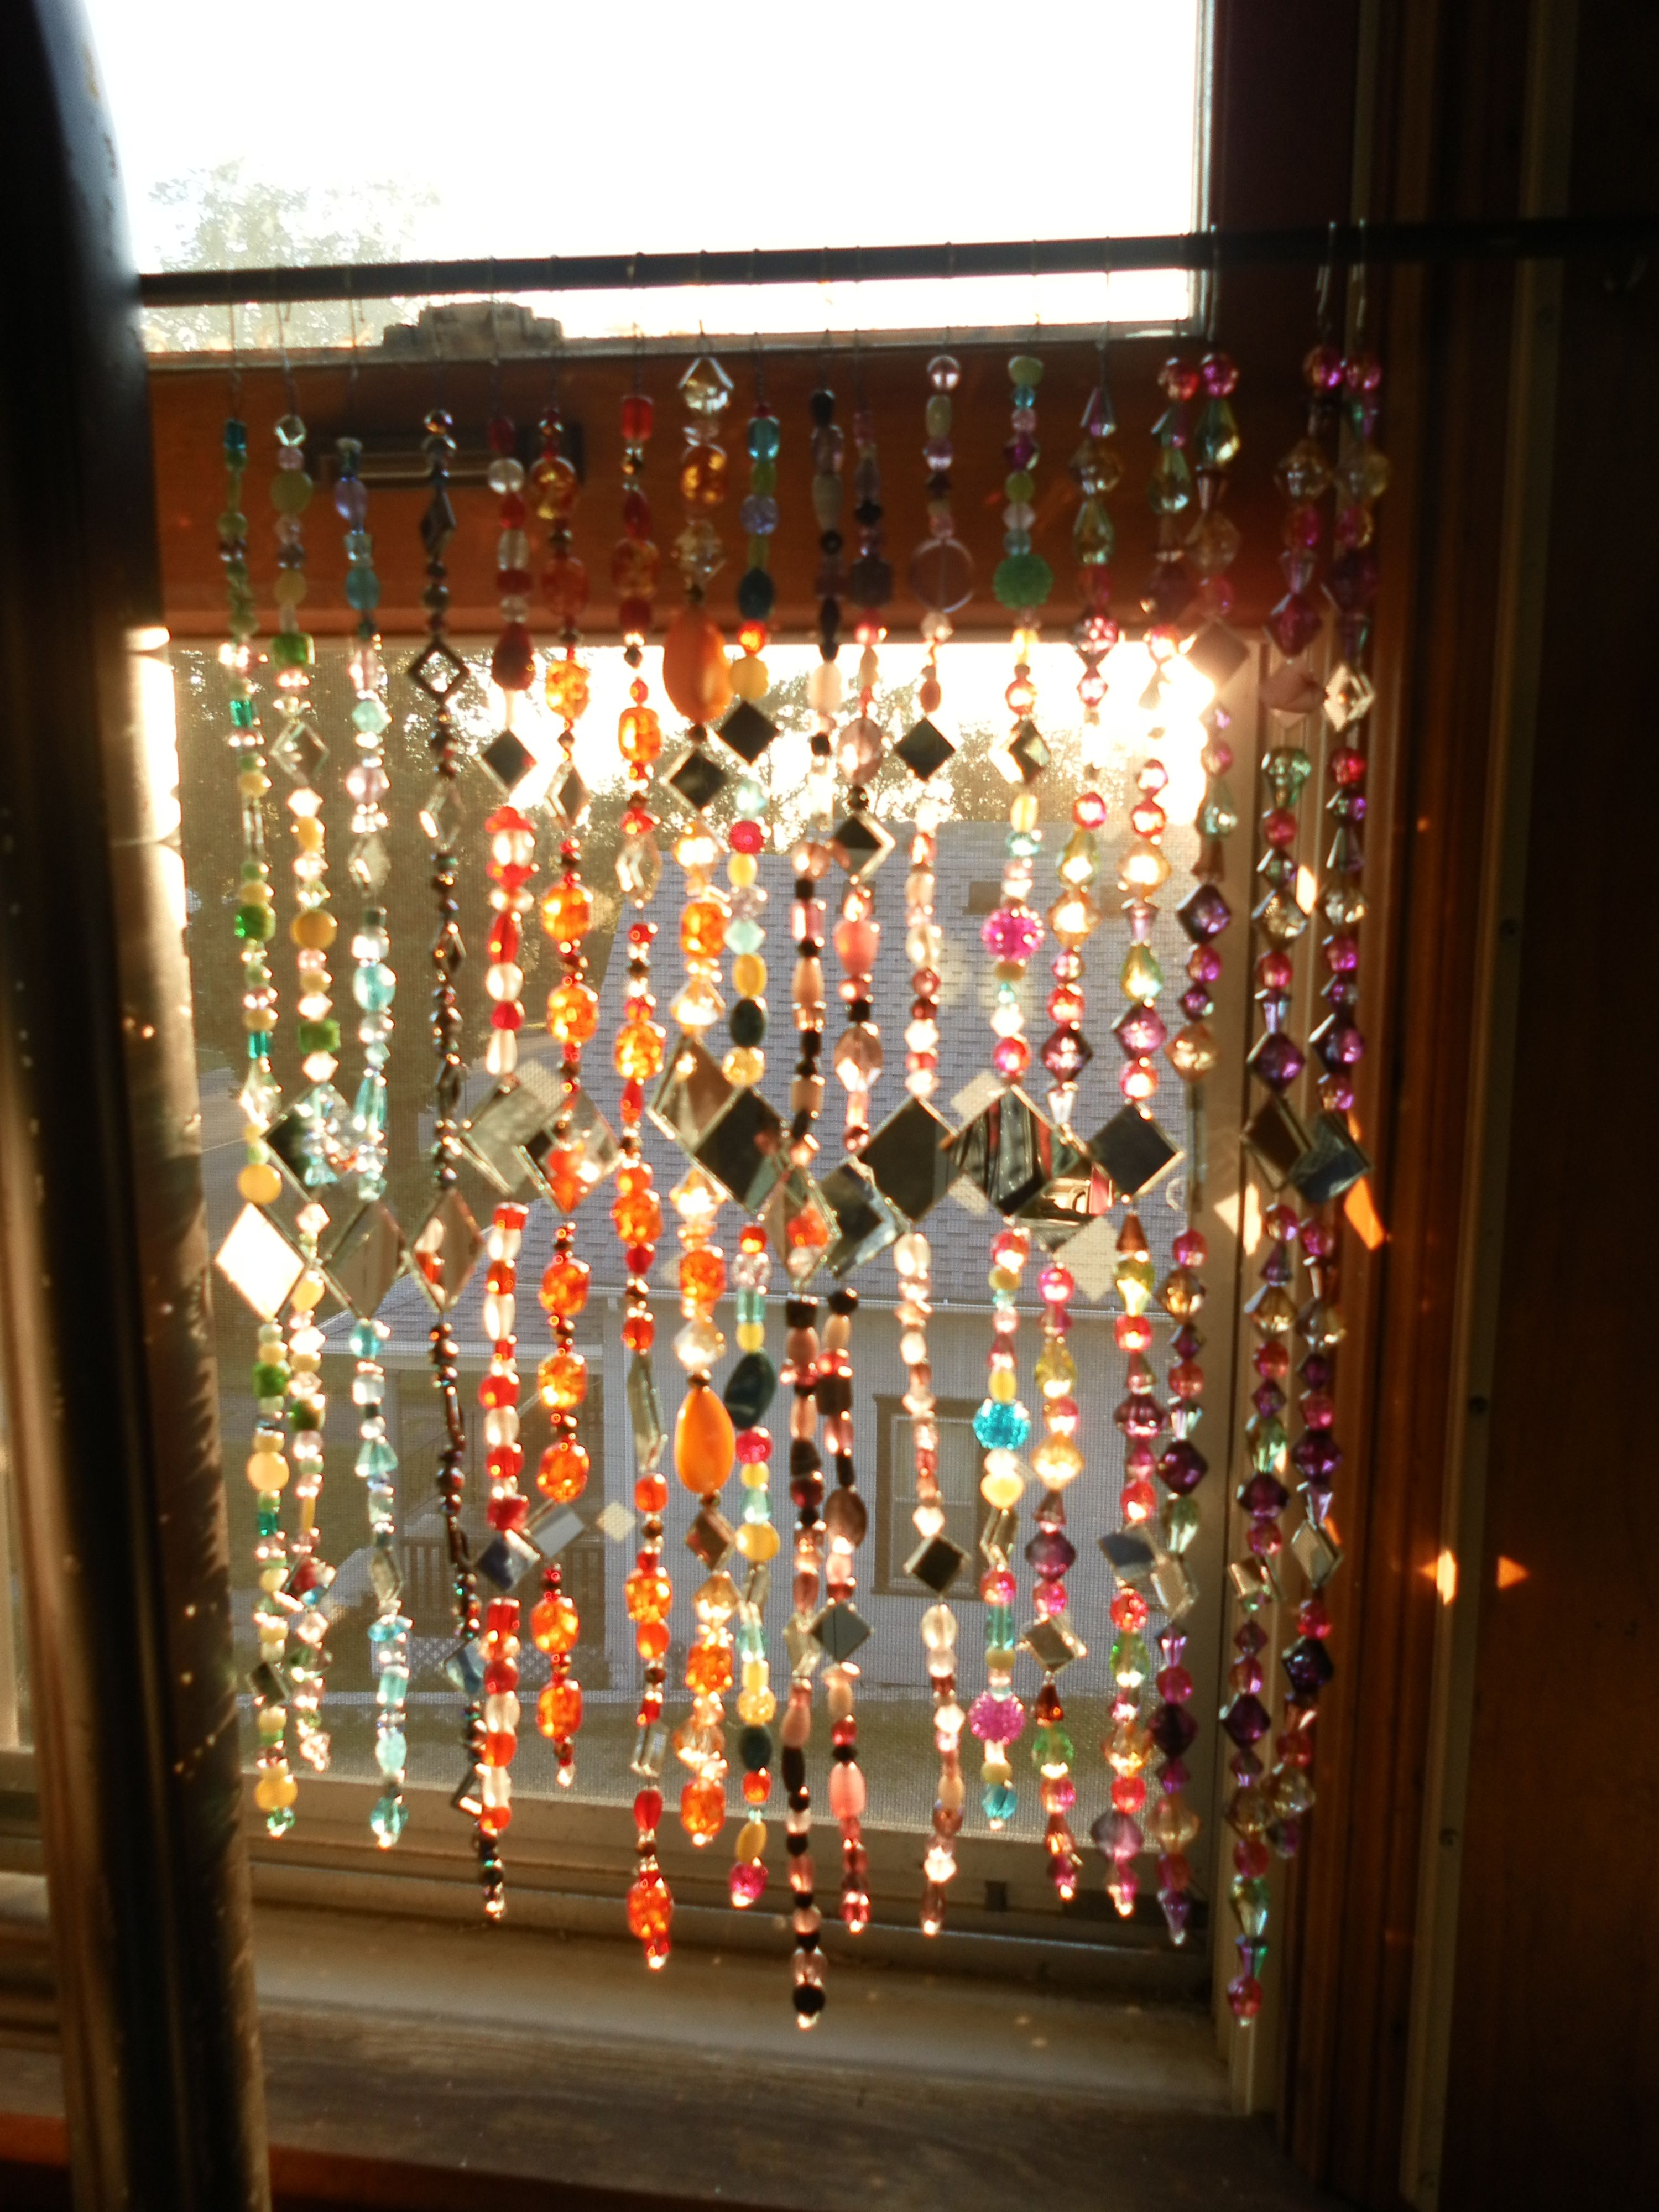 Sun Catcher Beaded Curtain Memories Of The Bead And Mirror Curtain In My Mums Summer House Garden Shed Made With Beaded Curtains Bohemian Decor Boho Decor